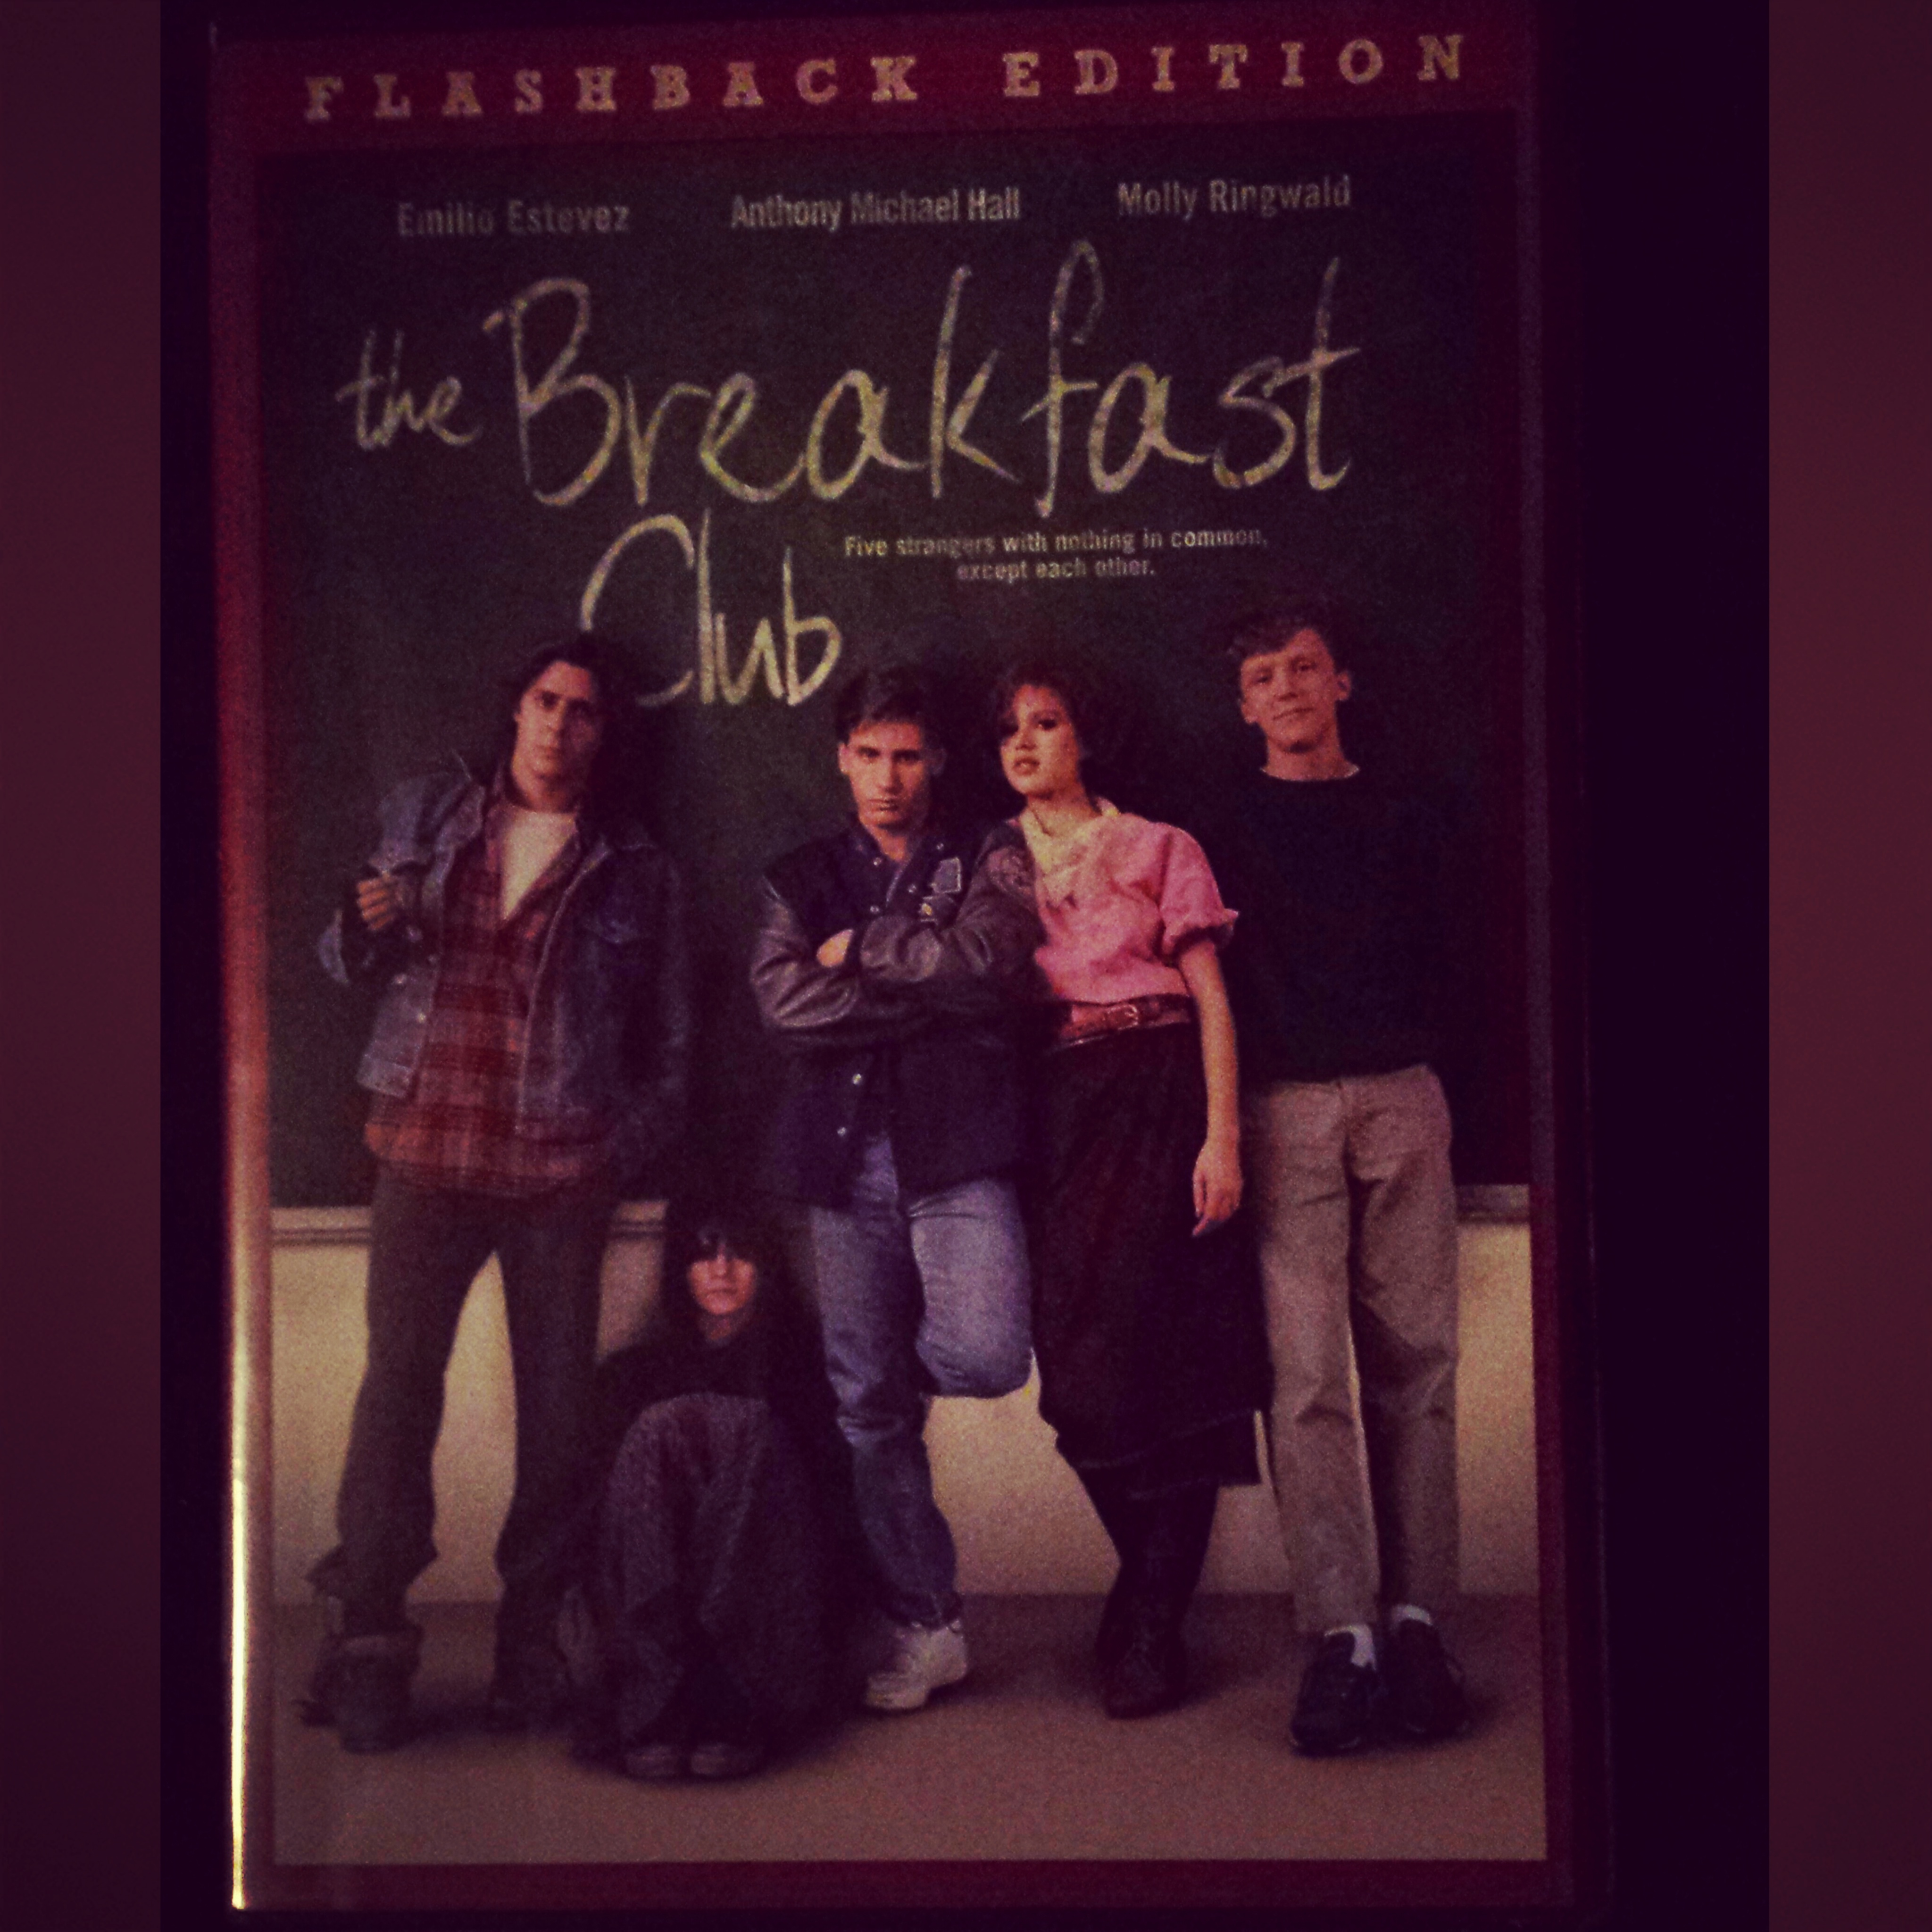 ethnography of communication in the breakfast club While a number of feature films can be used in group-process instruction, twelve angry men and the breakfast club are particularly valuable for analyzing group.